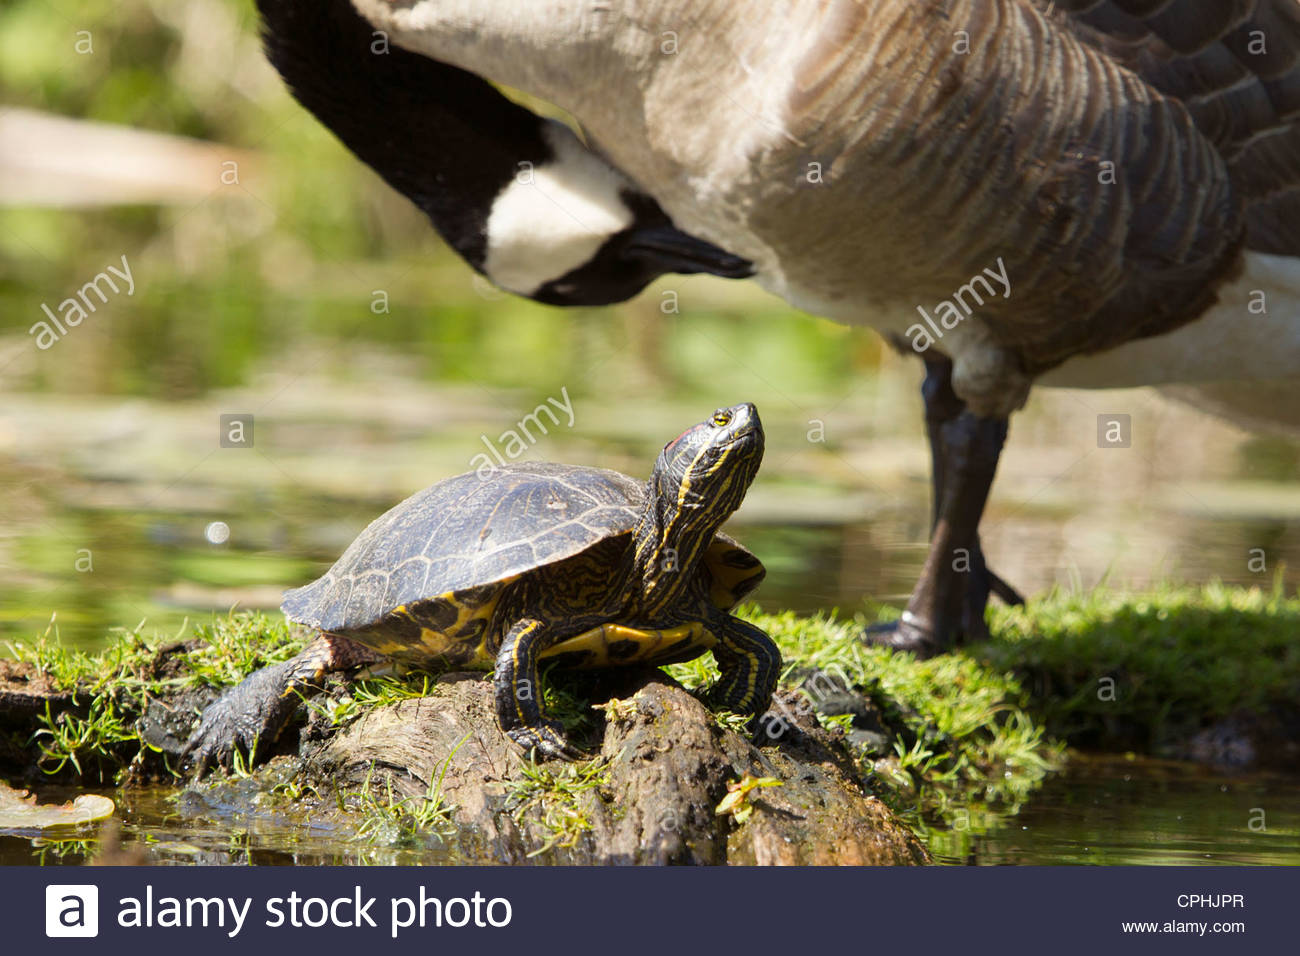 A red-eared slider (Trachemys scripta elegans) rests on a log in a small inlet in the Seattle Arboretum. - Stock Image